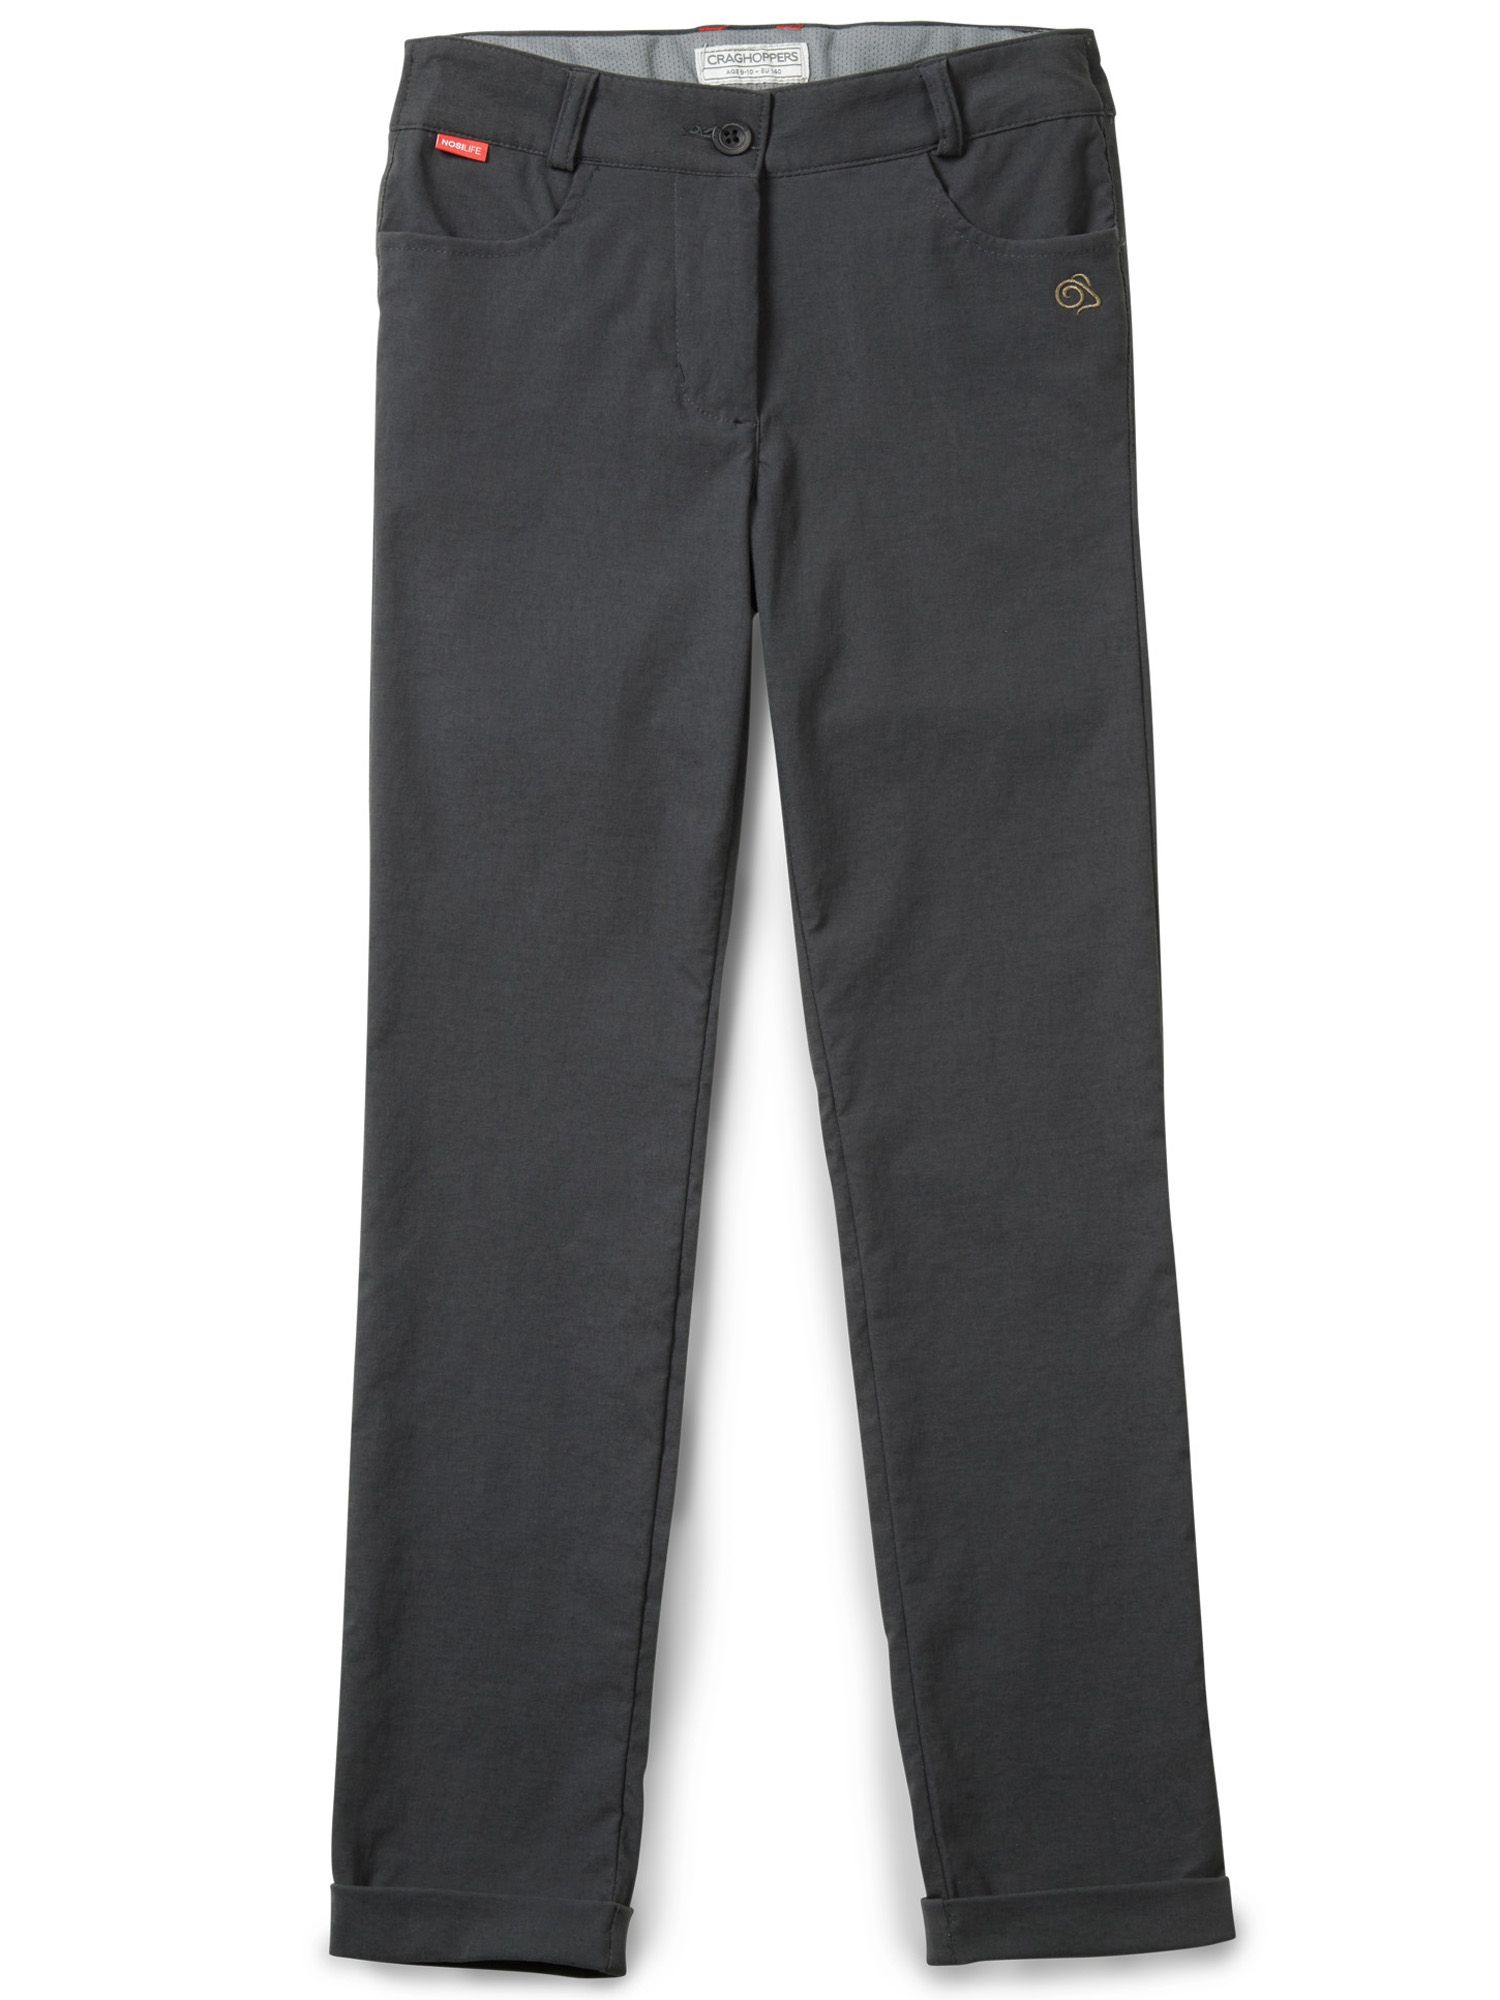 Photo of Craghoppers kids nosilife callie trouser- black